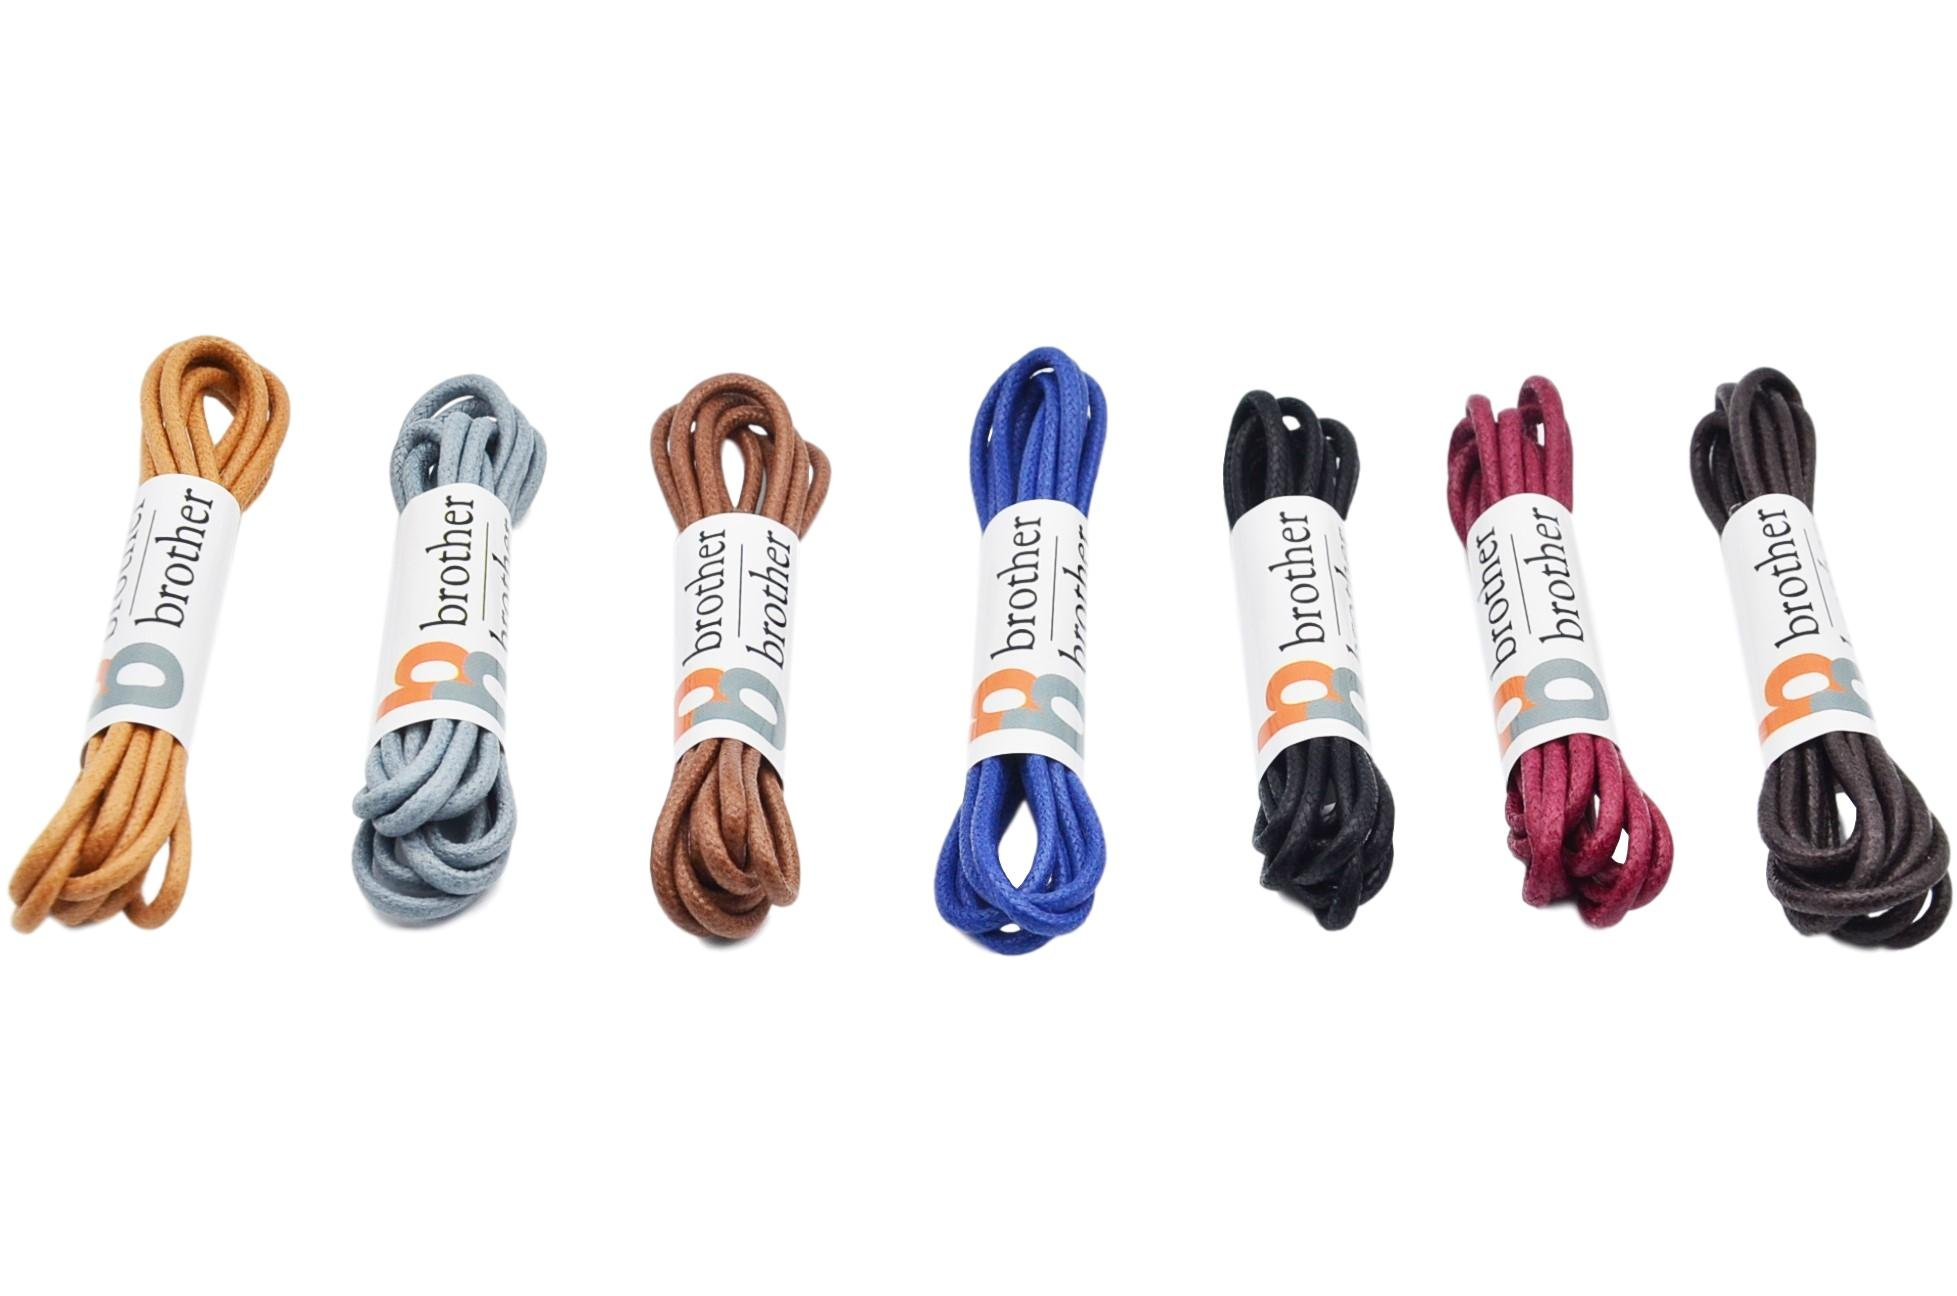 Brother Brother Colored Oxford Shoe Laces for Men (7 Pairs) | 100% Cotton Round and Waxed Shoelaces for Dress Shoes | Gift Box with Black, Burgundy, Brown, Dark Brown, Tan, Gray, and Blue Shoe Strings